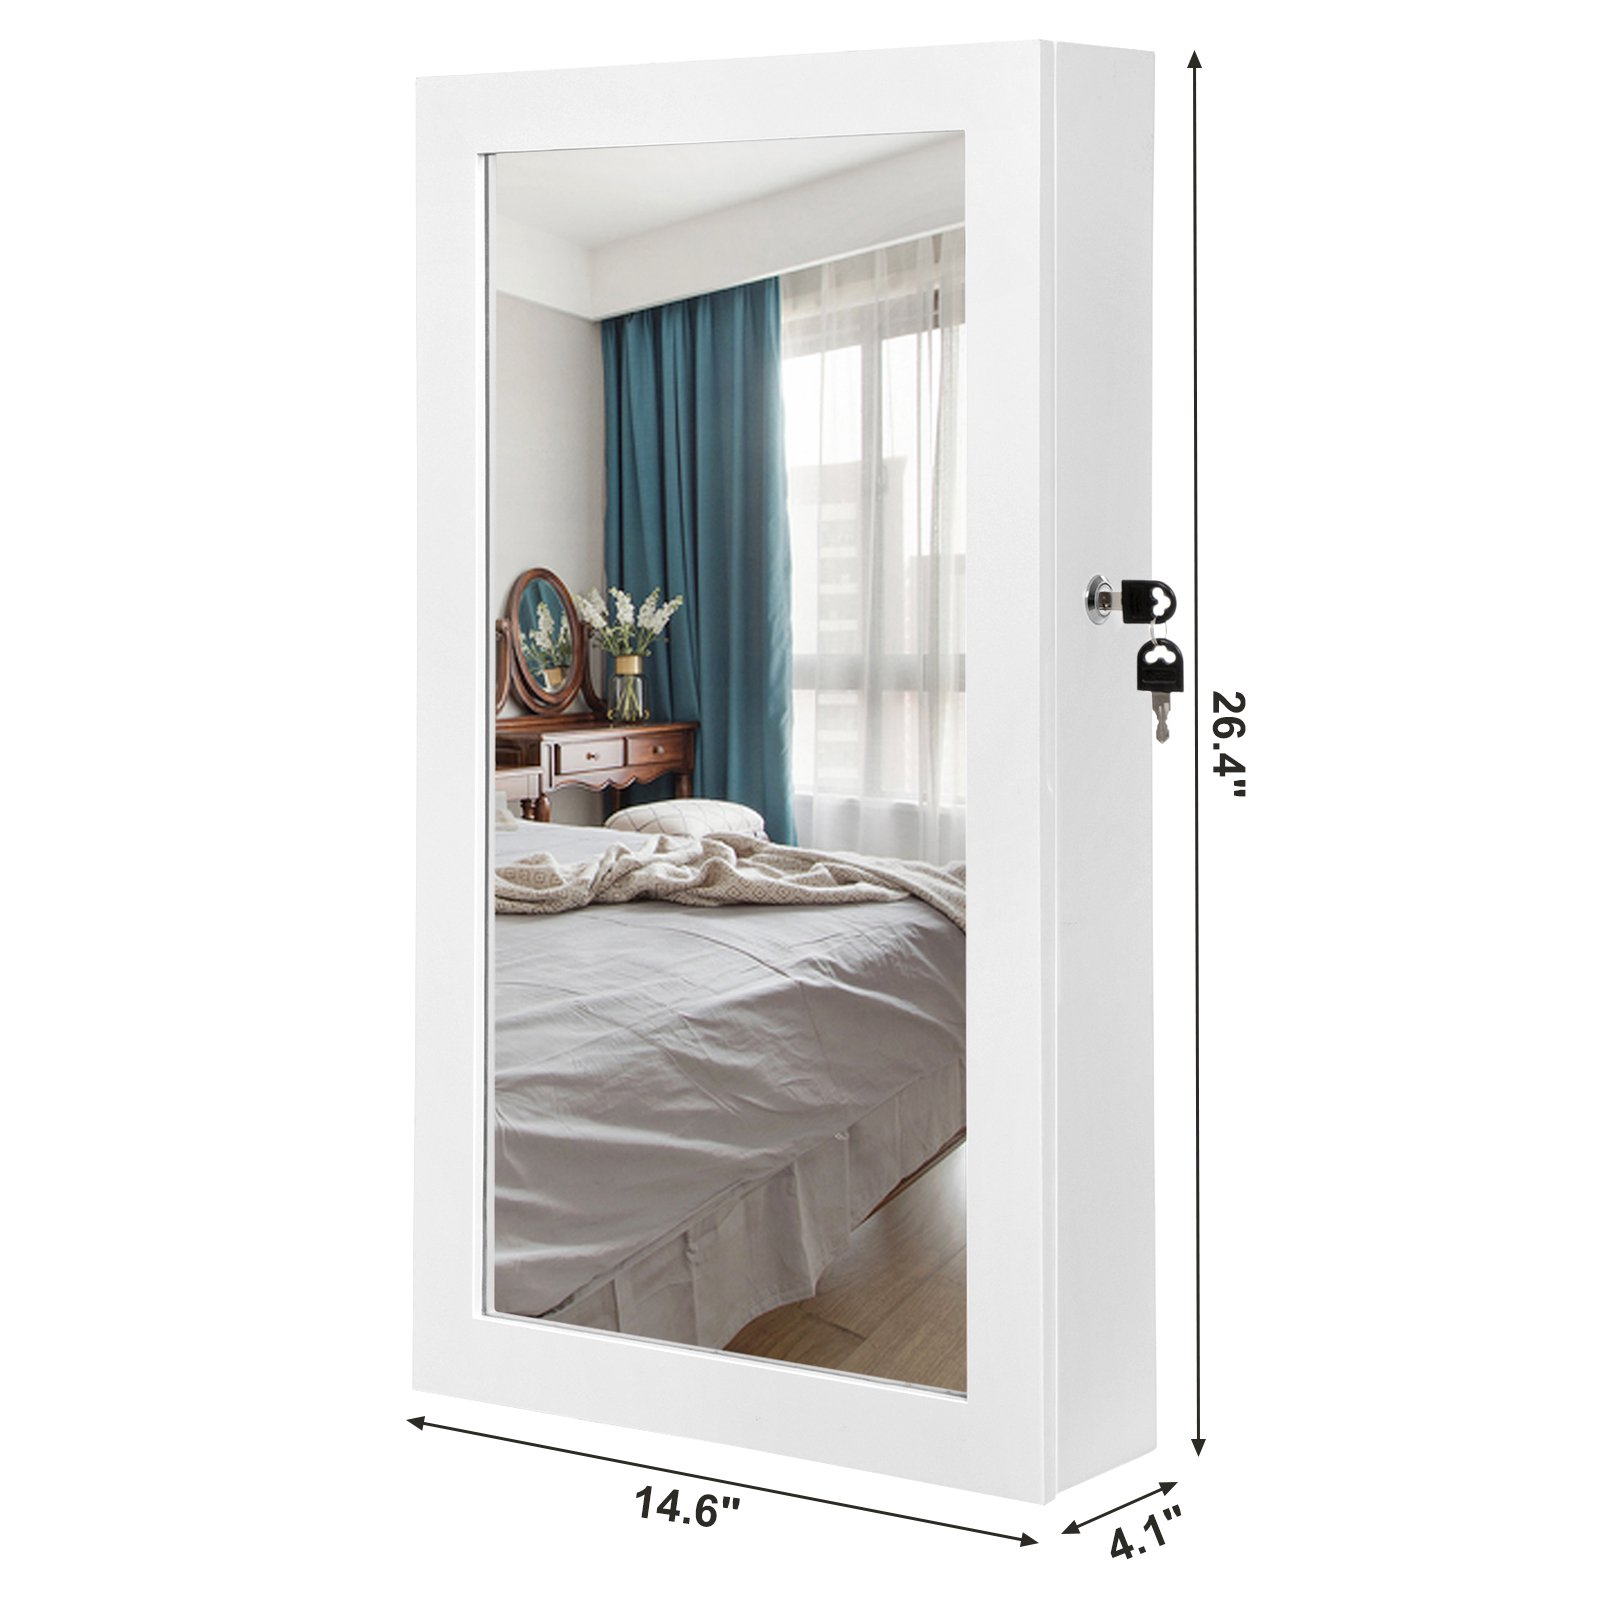 SONGMICS Lockable Jewelry Cabinet Armoire with Mirror, Wall-Mounted Space Saving Jewelry Storage Organizer White UJJC51WT by SONGMICS (Image #7)